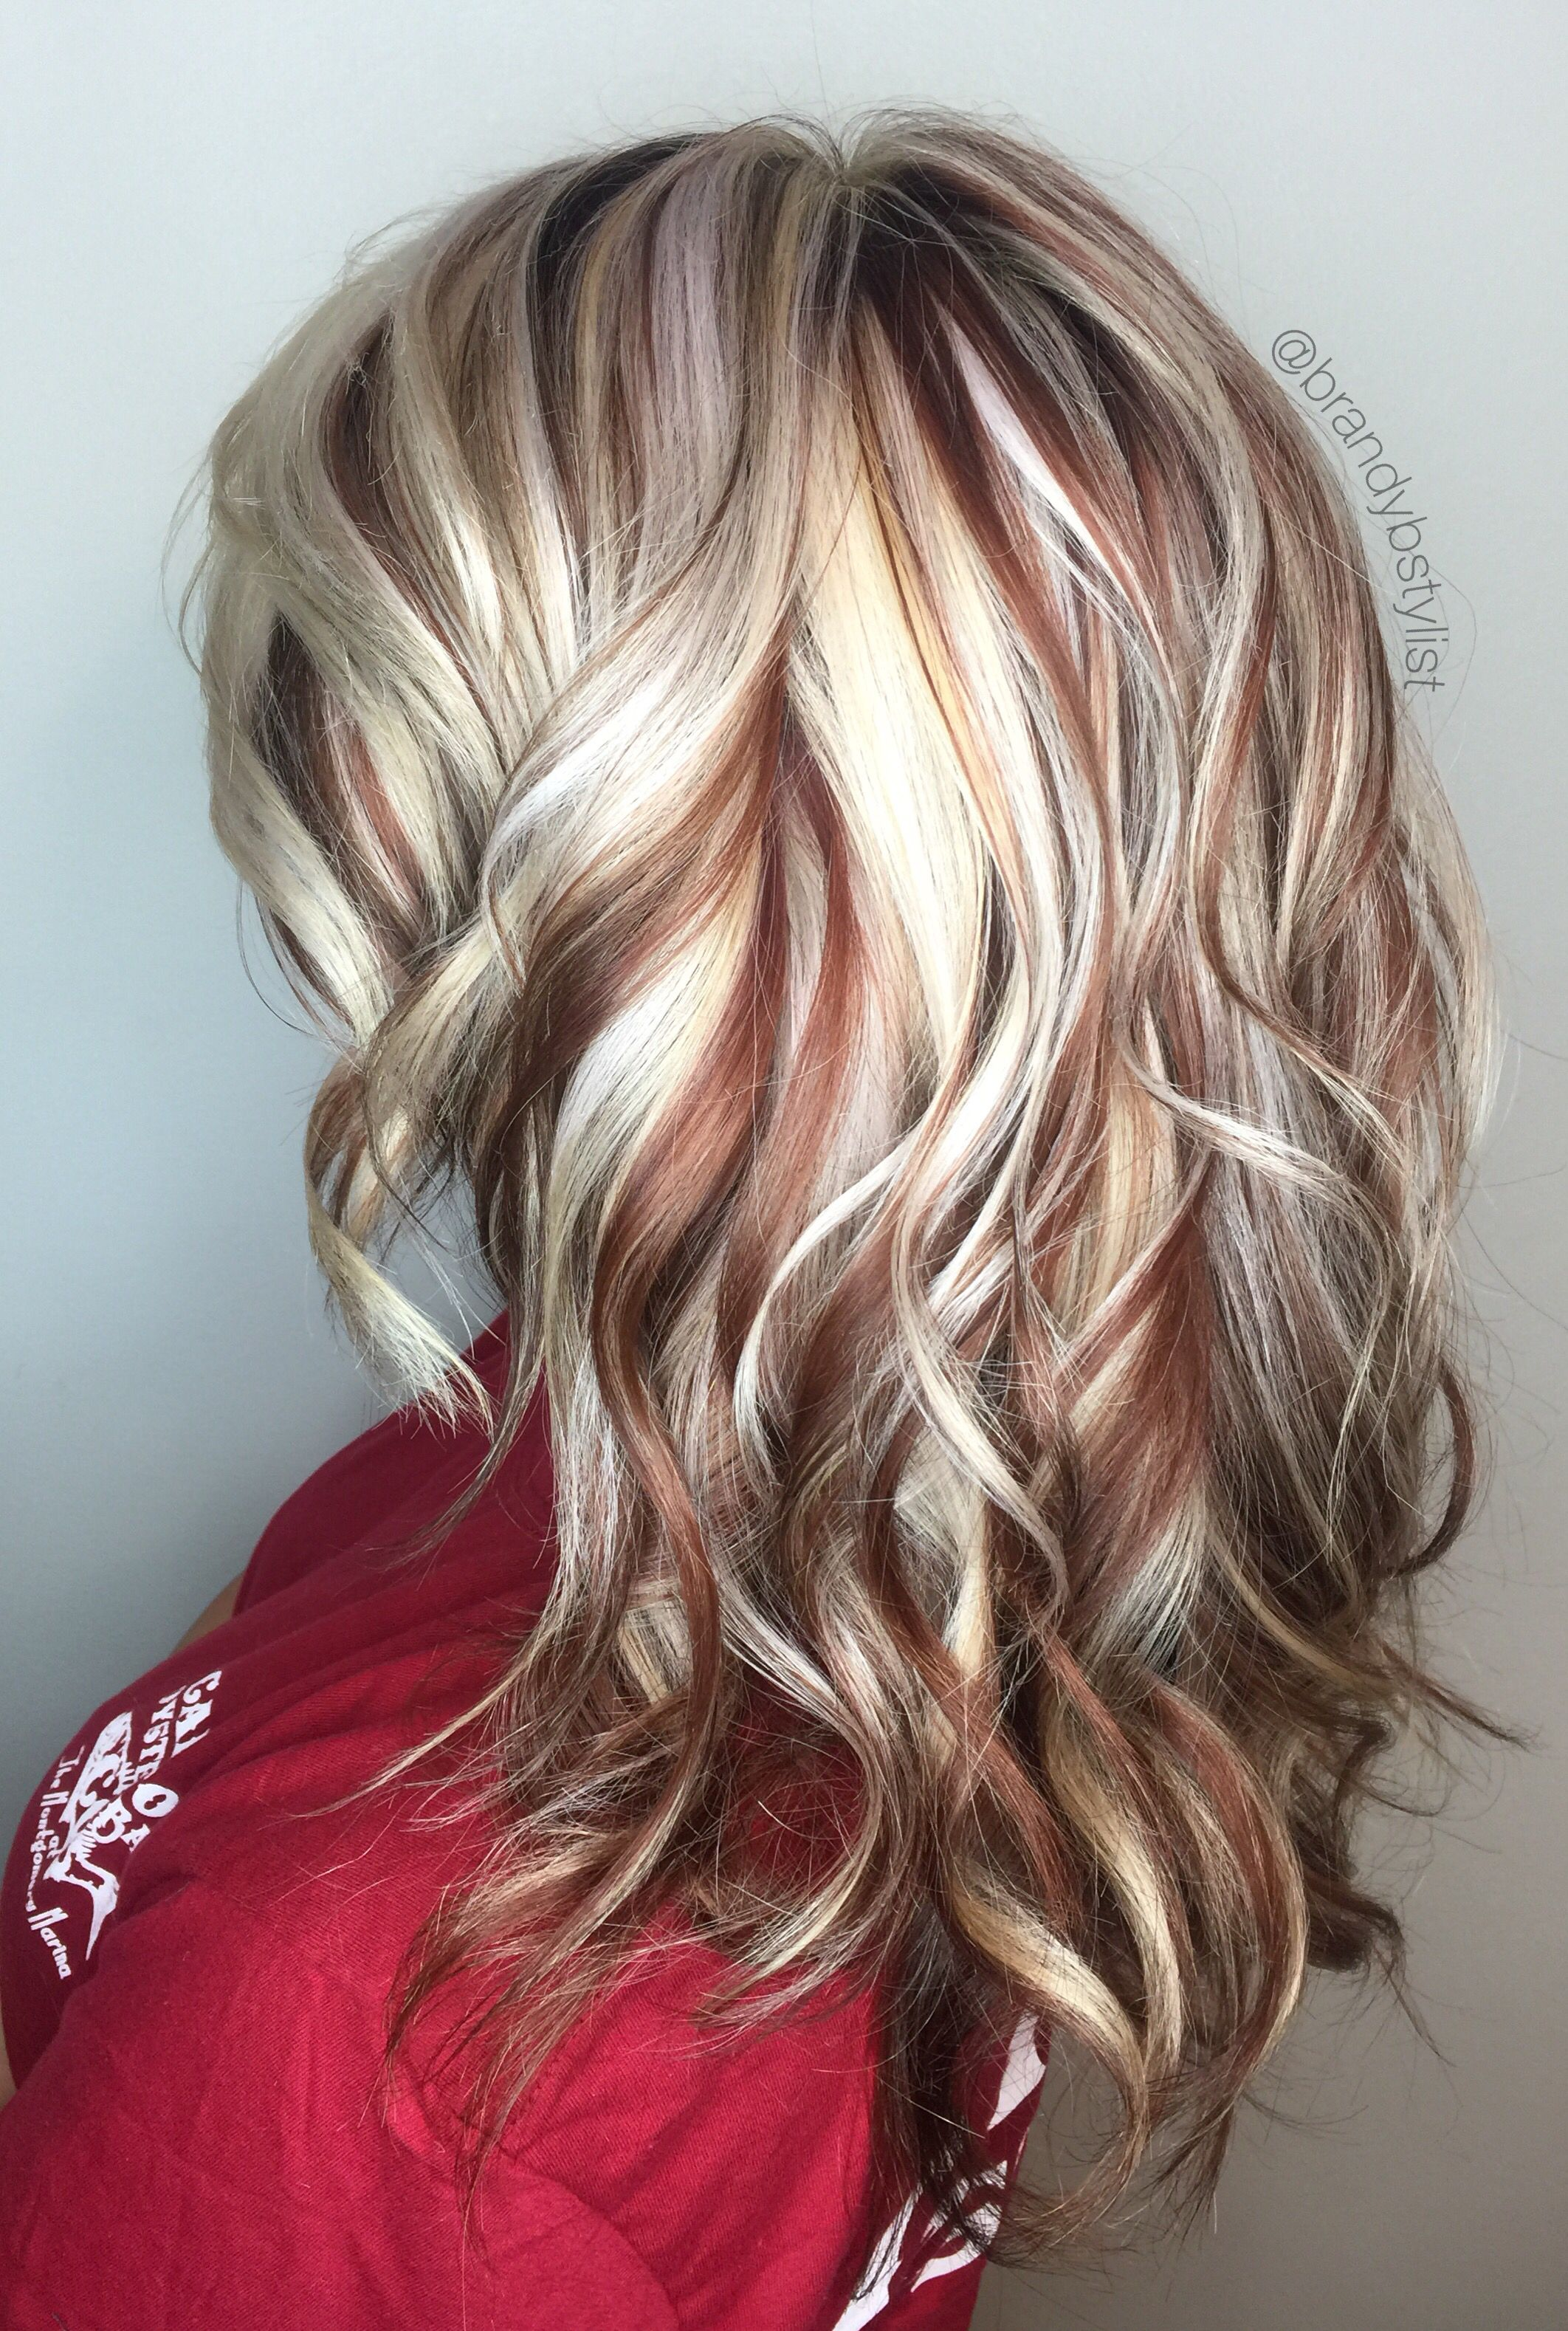 Blonde And Red Highlights Lowlights Copper Lowlight Hair Color Brandystylist